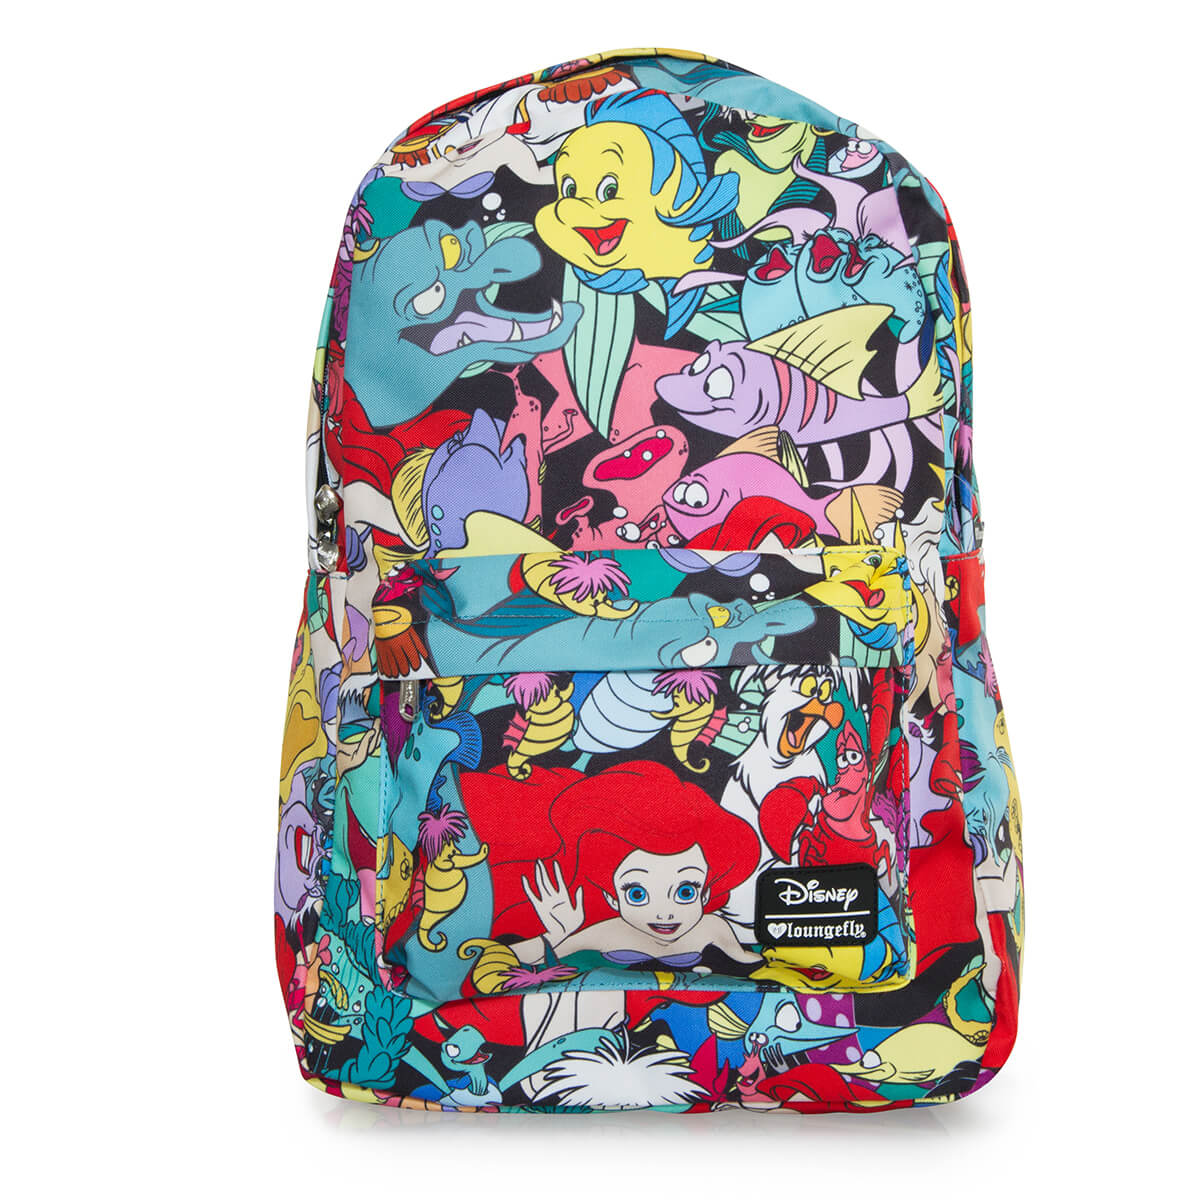 e8b39654081 Loungefly Disney The Little Mermaid Ariel Characters AOP Backpack.  Description